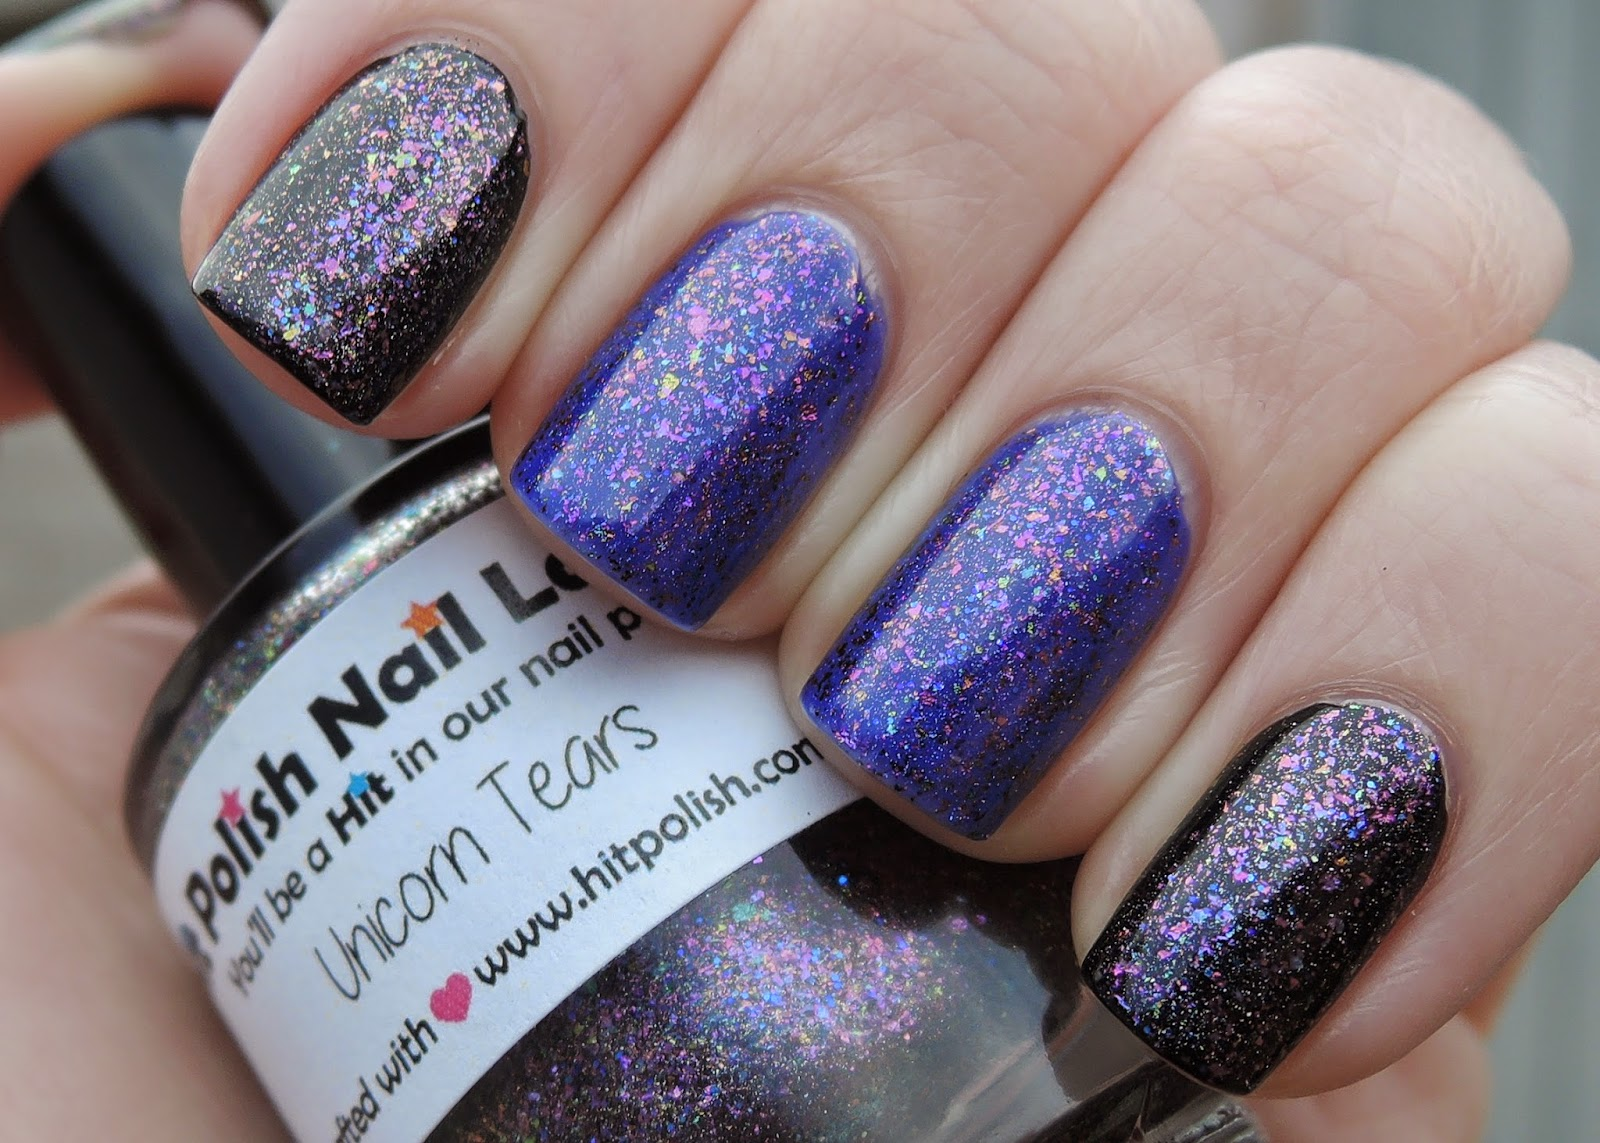 Hit Polish Nail Lacquer Unicorn Tears